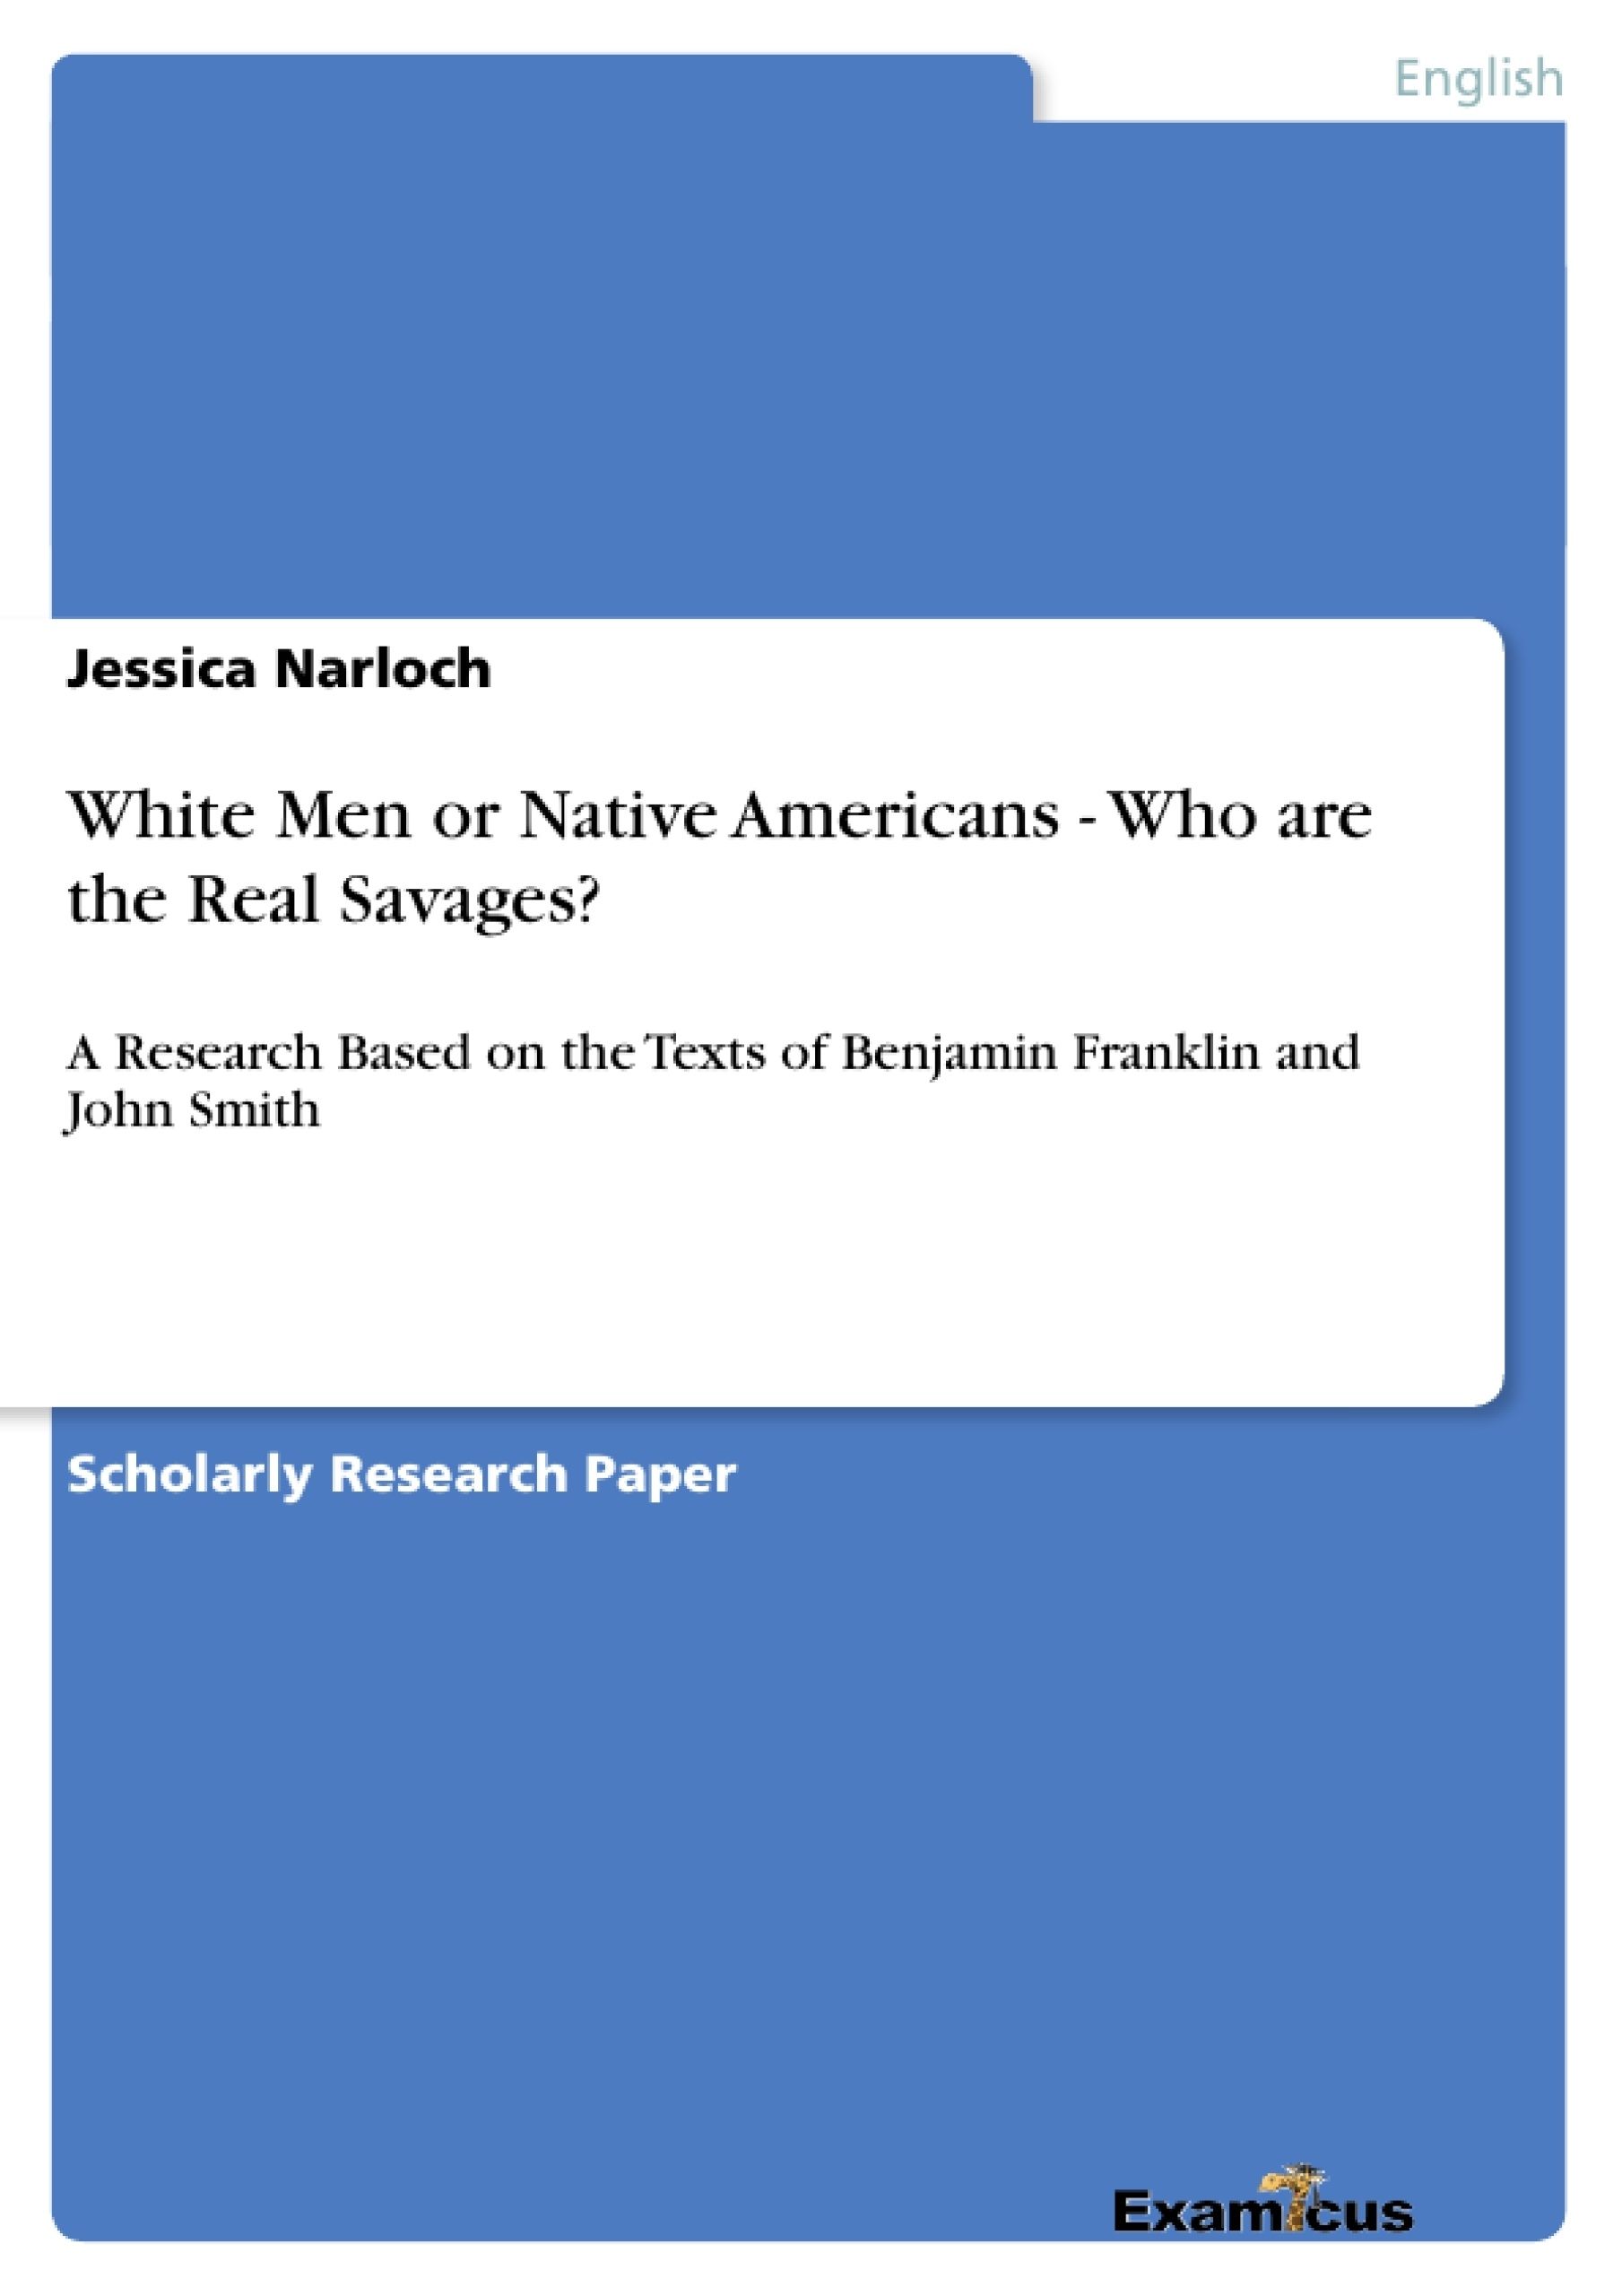 Title: White Men or Native Americans - Who are the Real Savages?